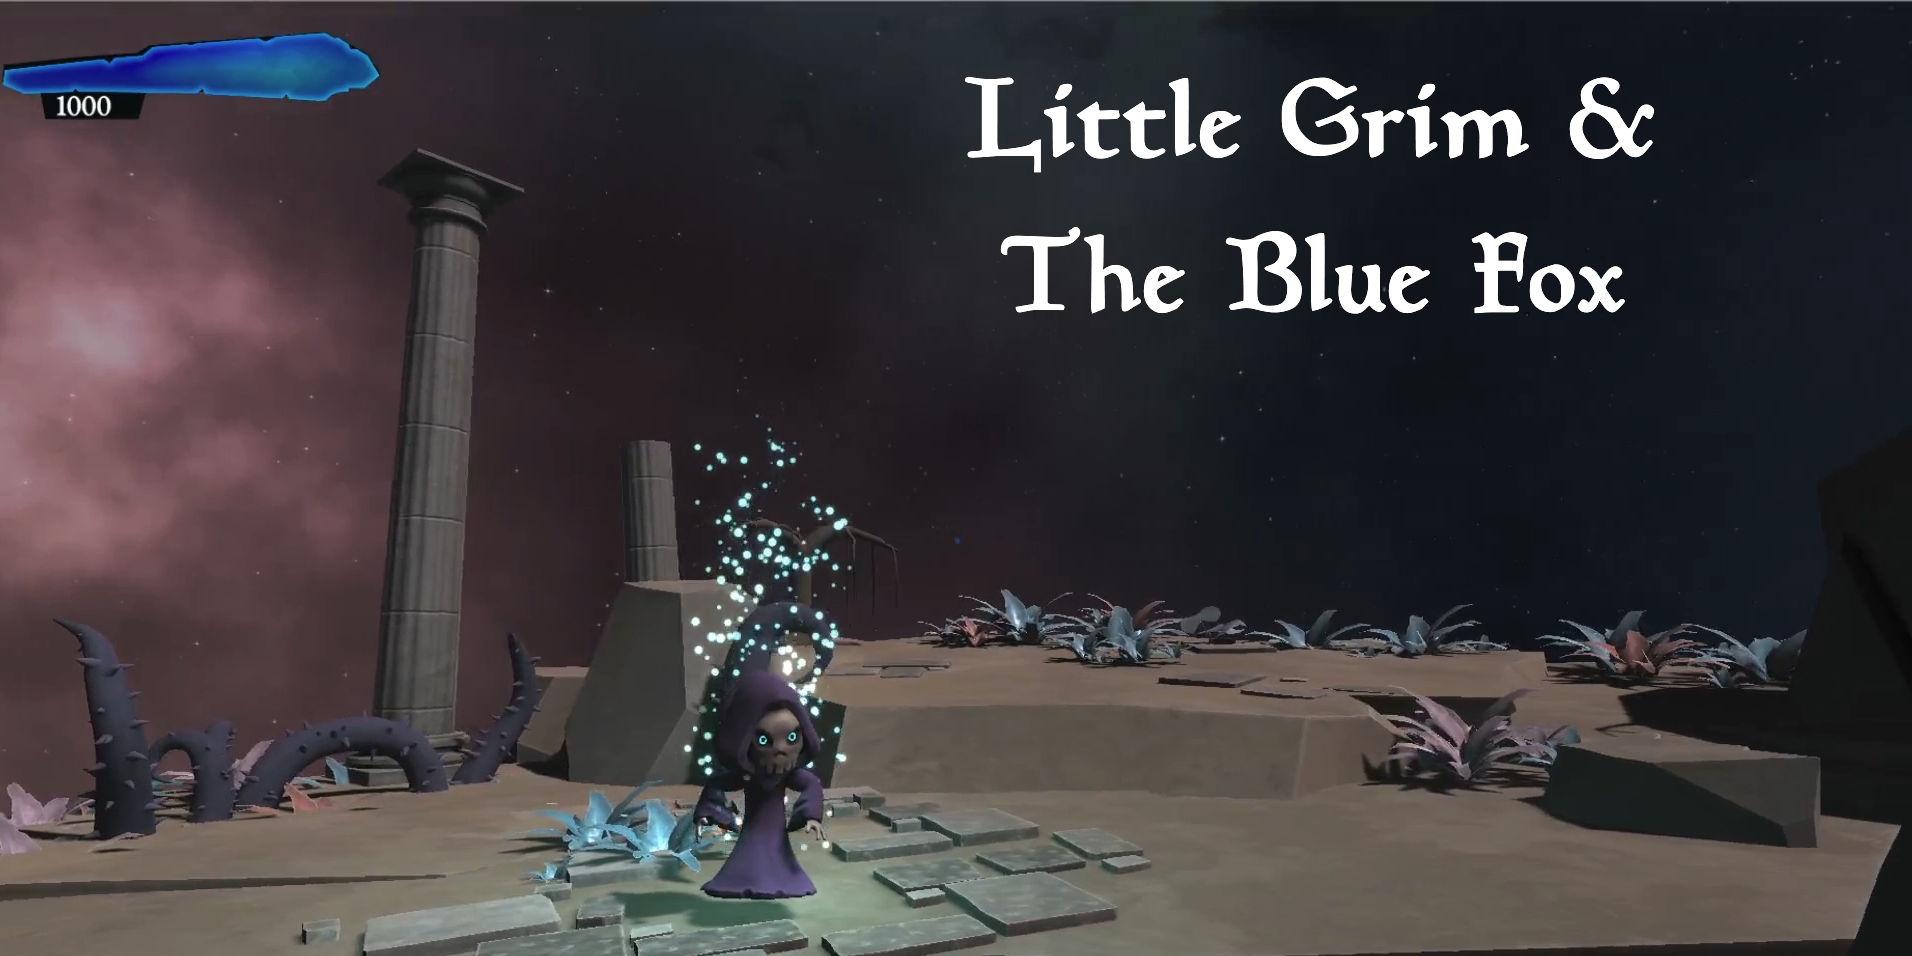 LITTLE GRIM & THE BLUE FOX